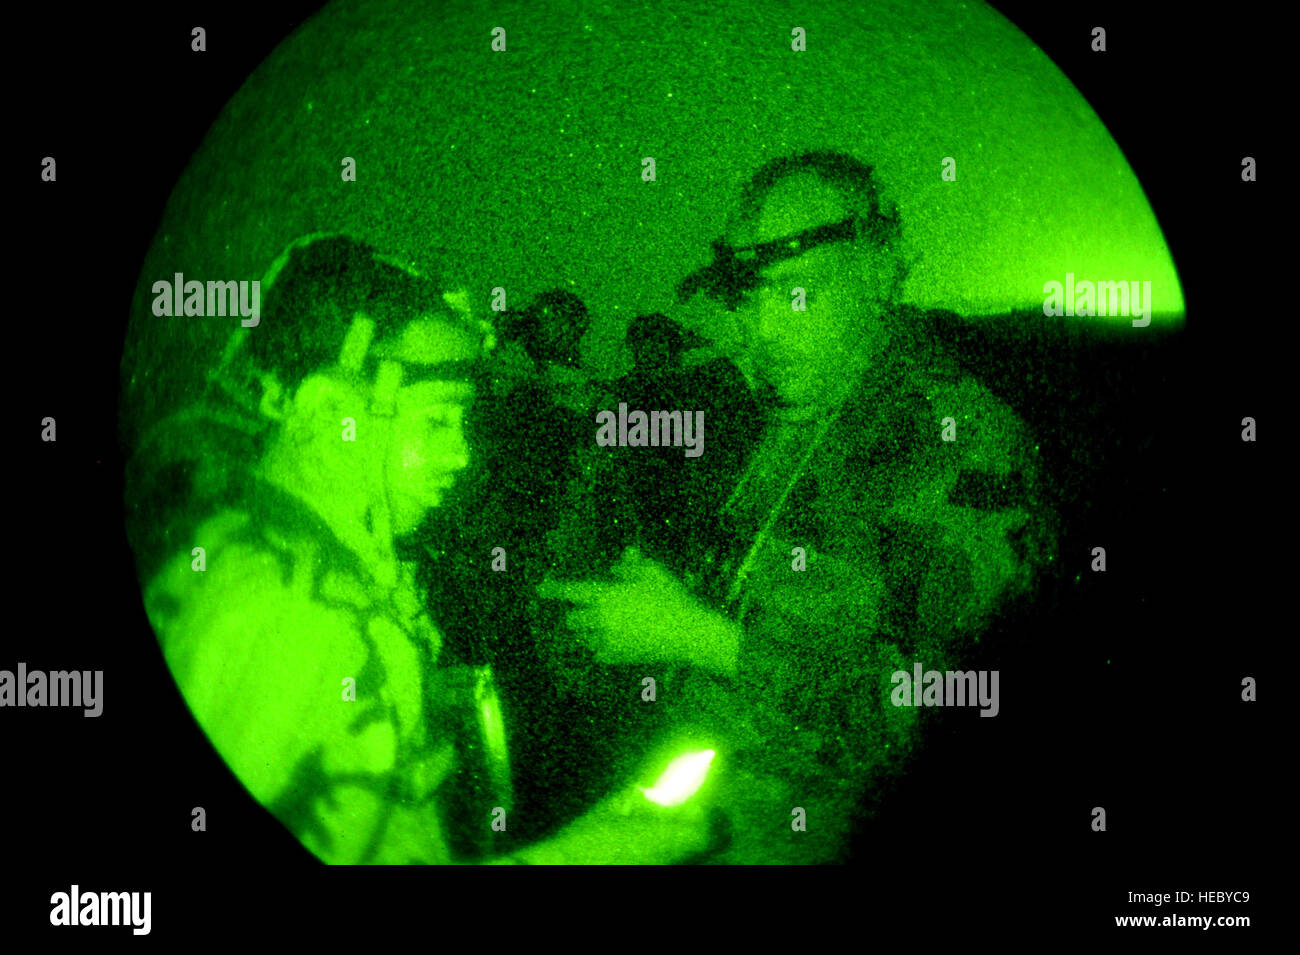 Two Djiboutian army soldiers discuss their PVS-7 Night Vision Goggles during a night vision goggle class in Arta, Stock Photo